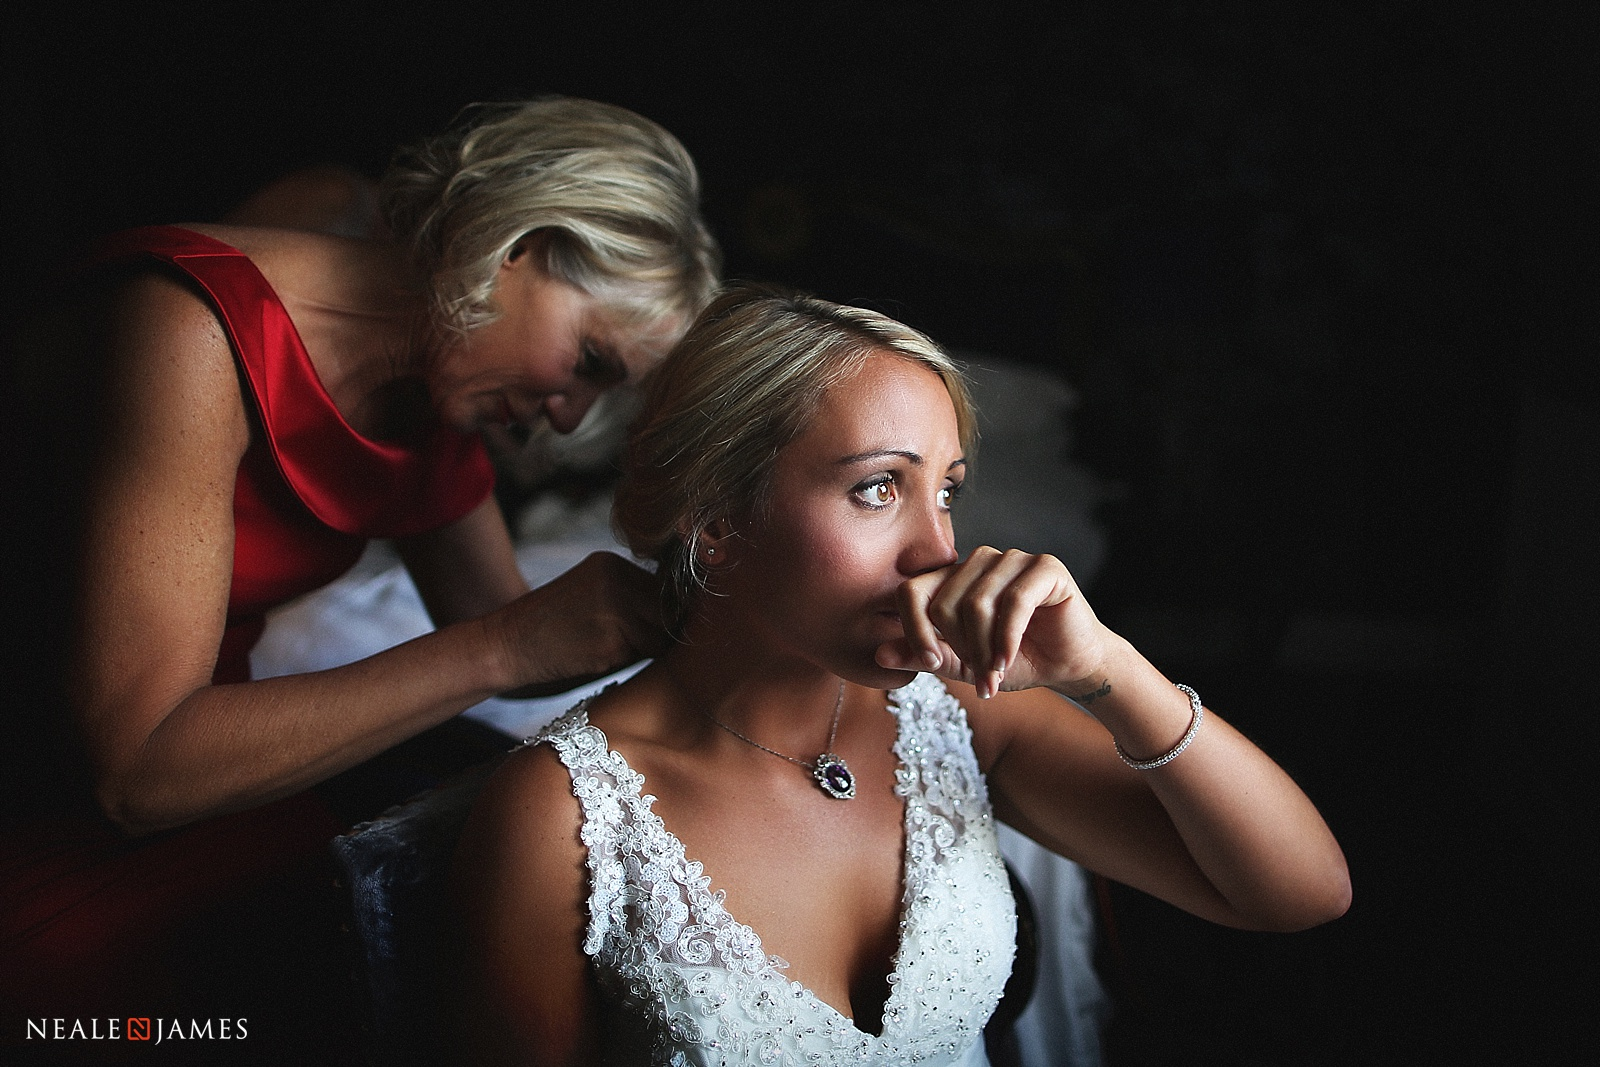 Colour picture of a bride receiving a gift from her mother